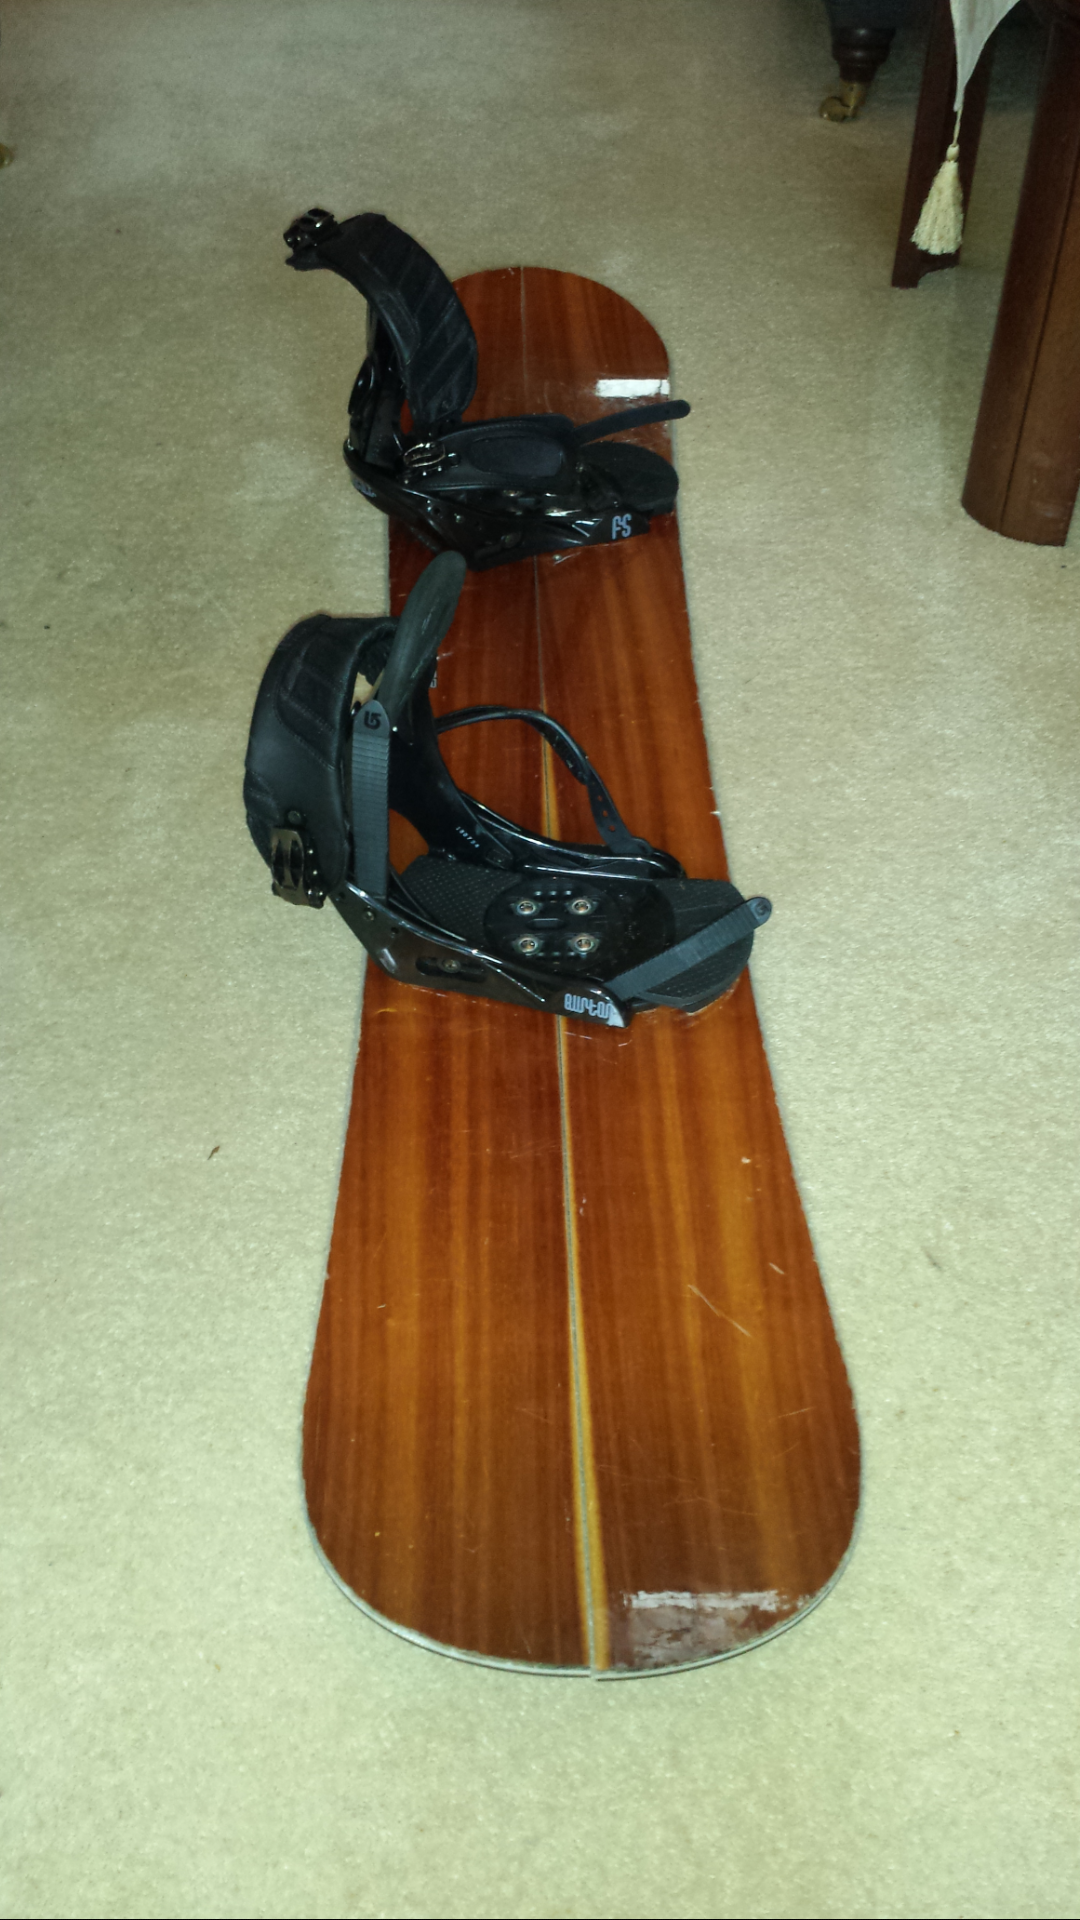 Board cut, old bindings remounted